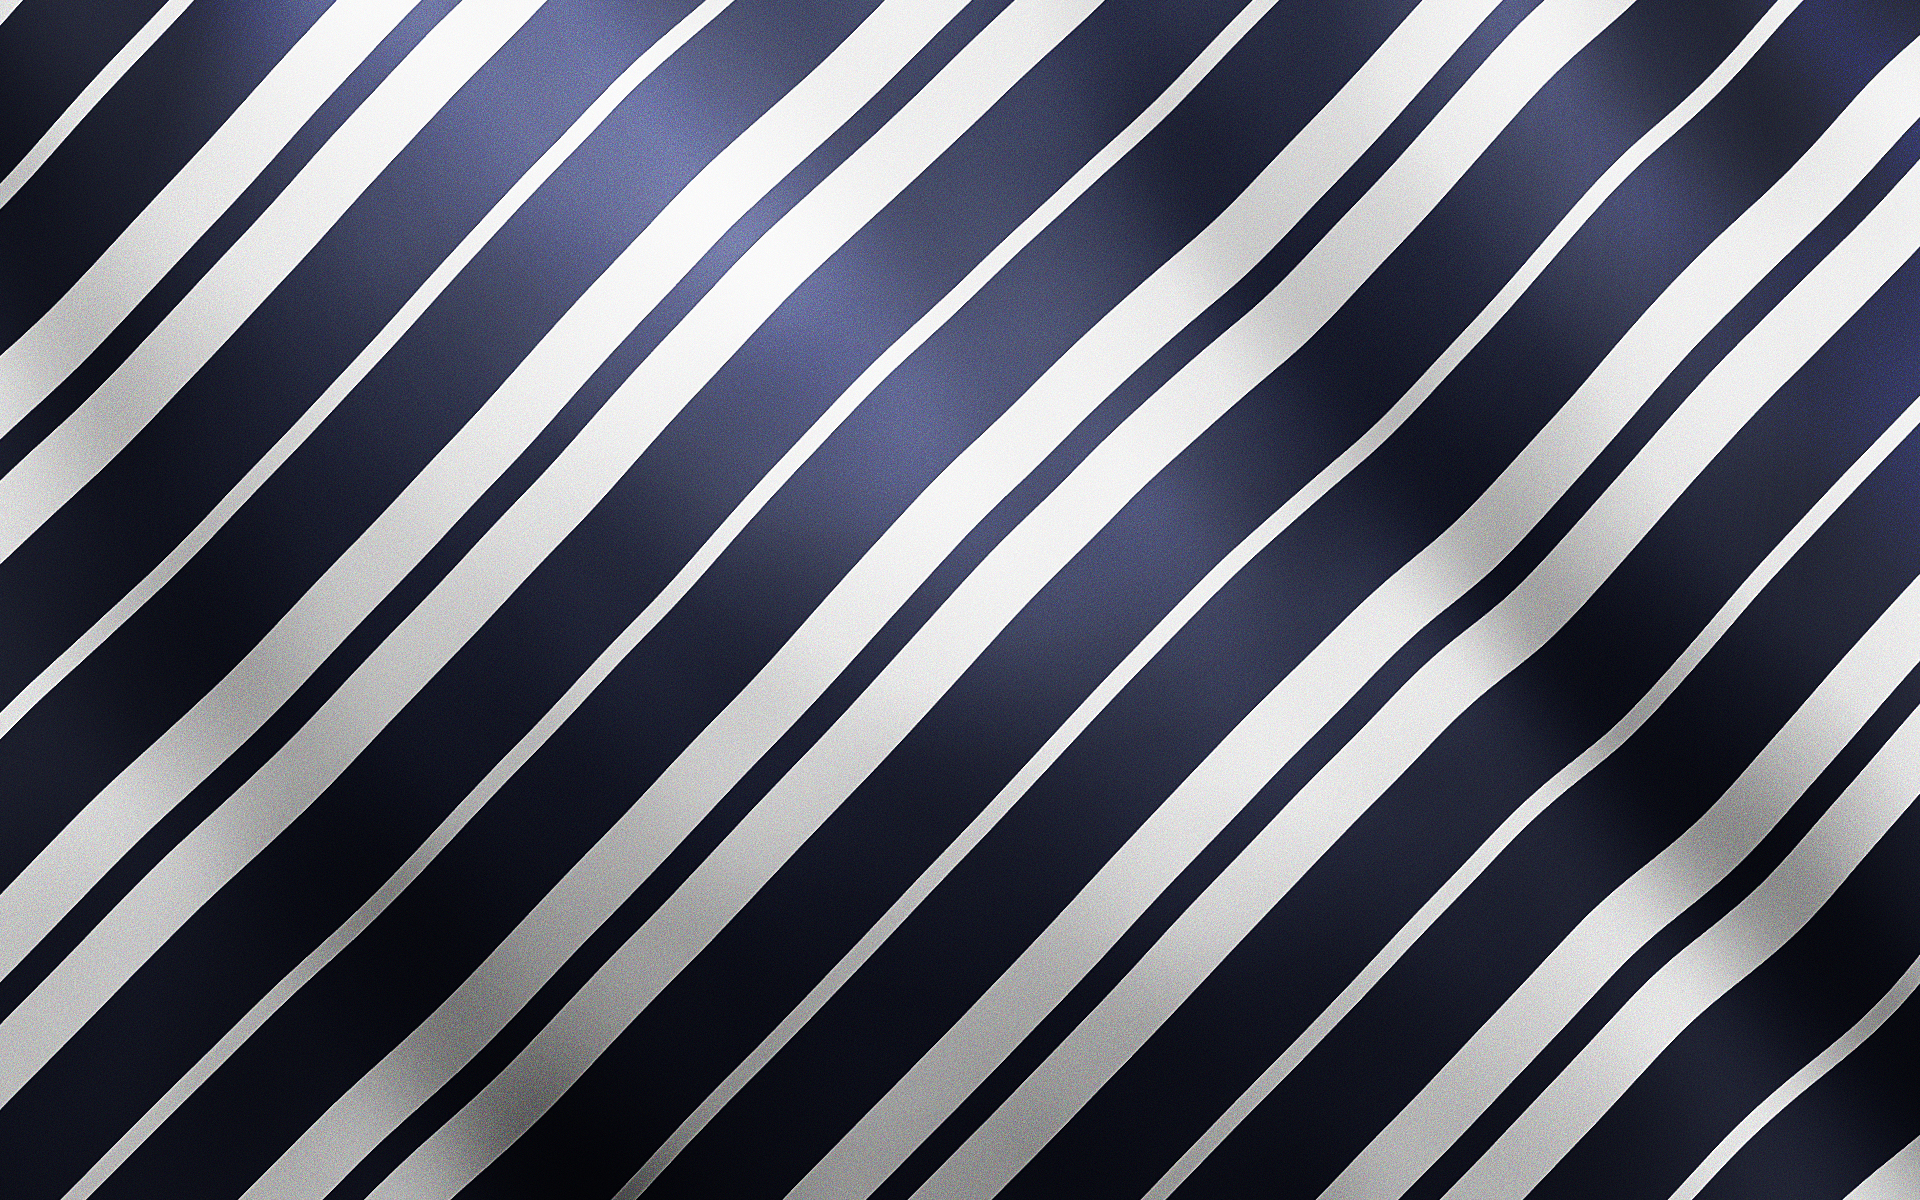 Silver and black line abstract | 1920 x 1200 | download | close